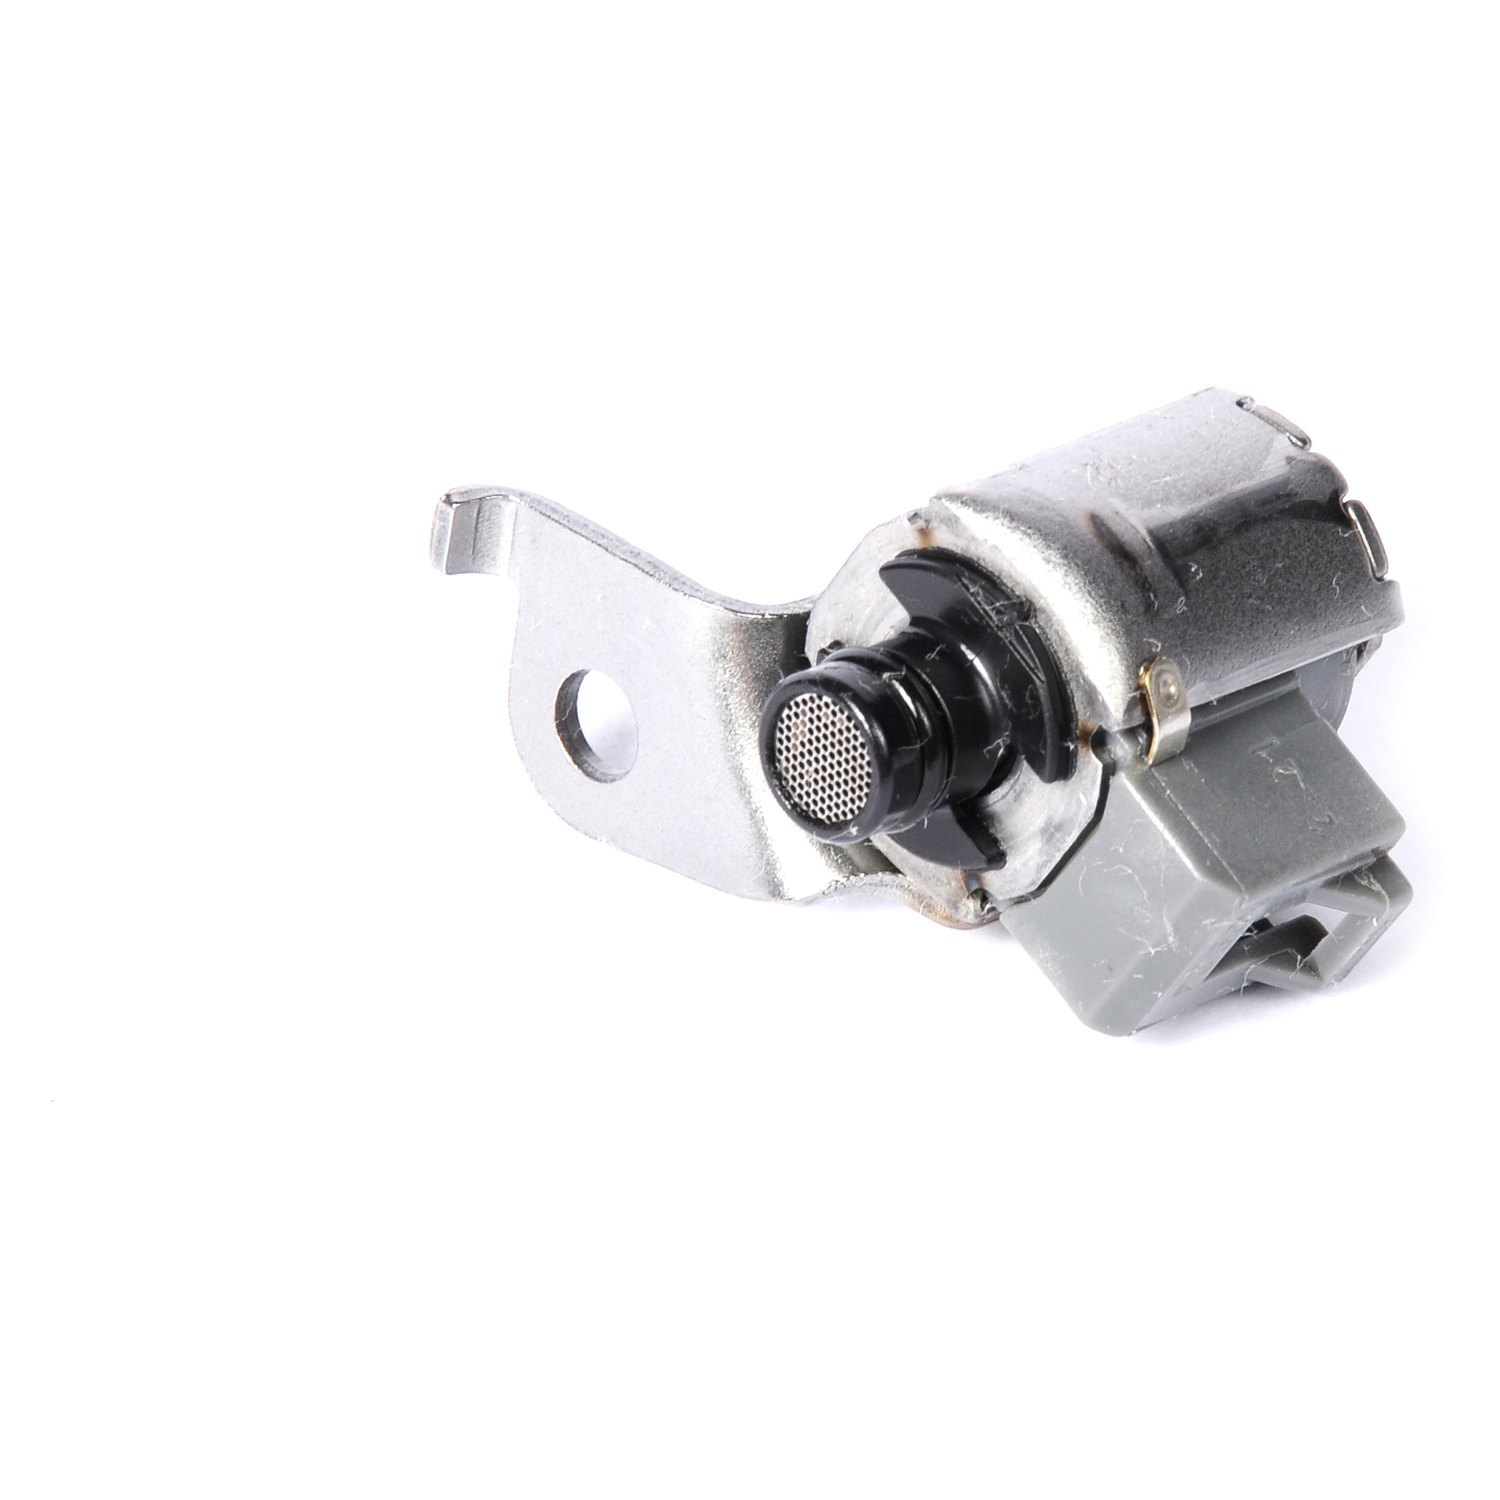 Volvo 850 Transmission Solenoid: Service Manual [Replacement Of A Shift Solenoid In A 2005